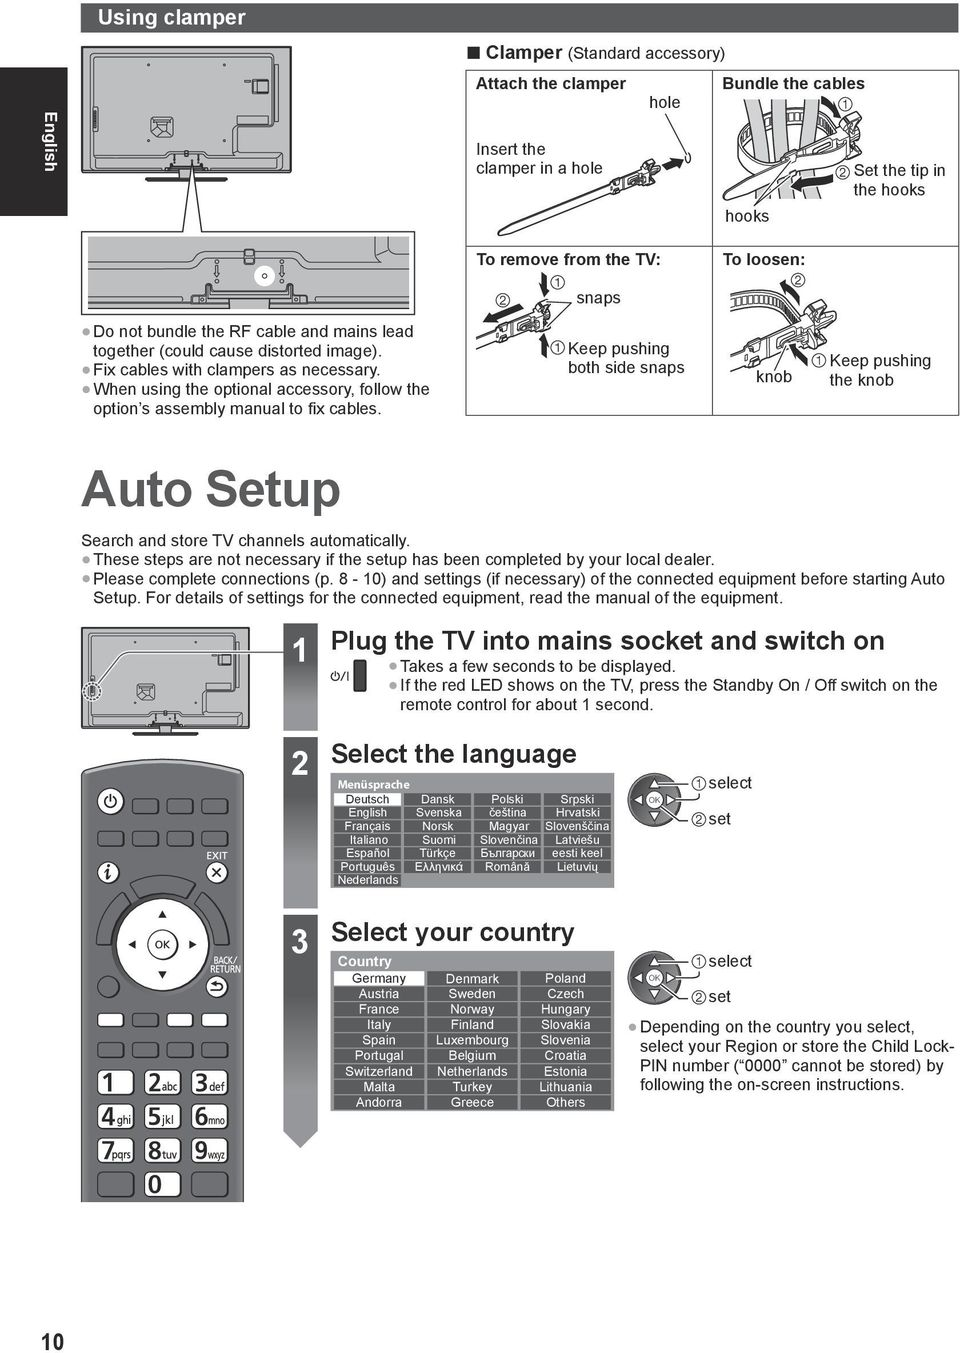 Keep pushing both side snaps knob Keep pushing the knob Auto Setup Search and store TV channels automatically. These steps are not necessary if the setup has been completed by your local dealer.